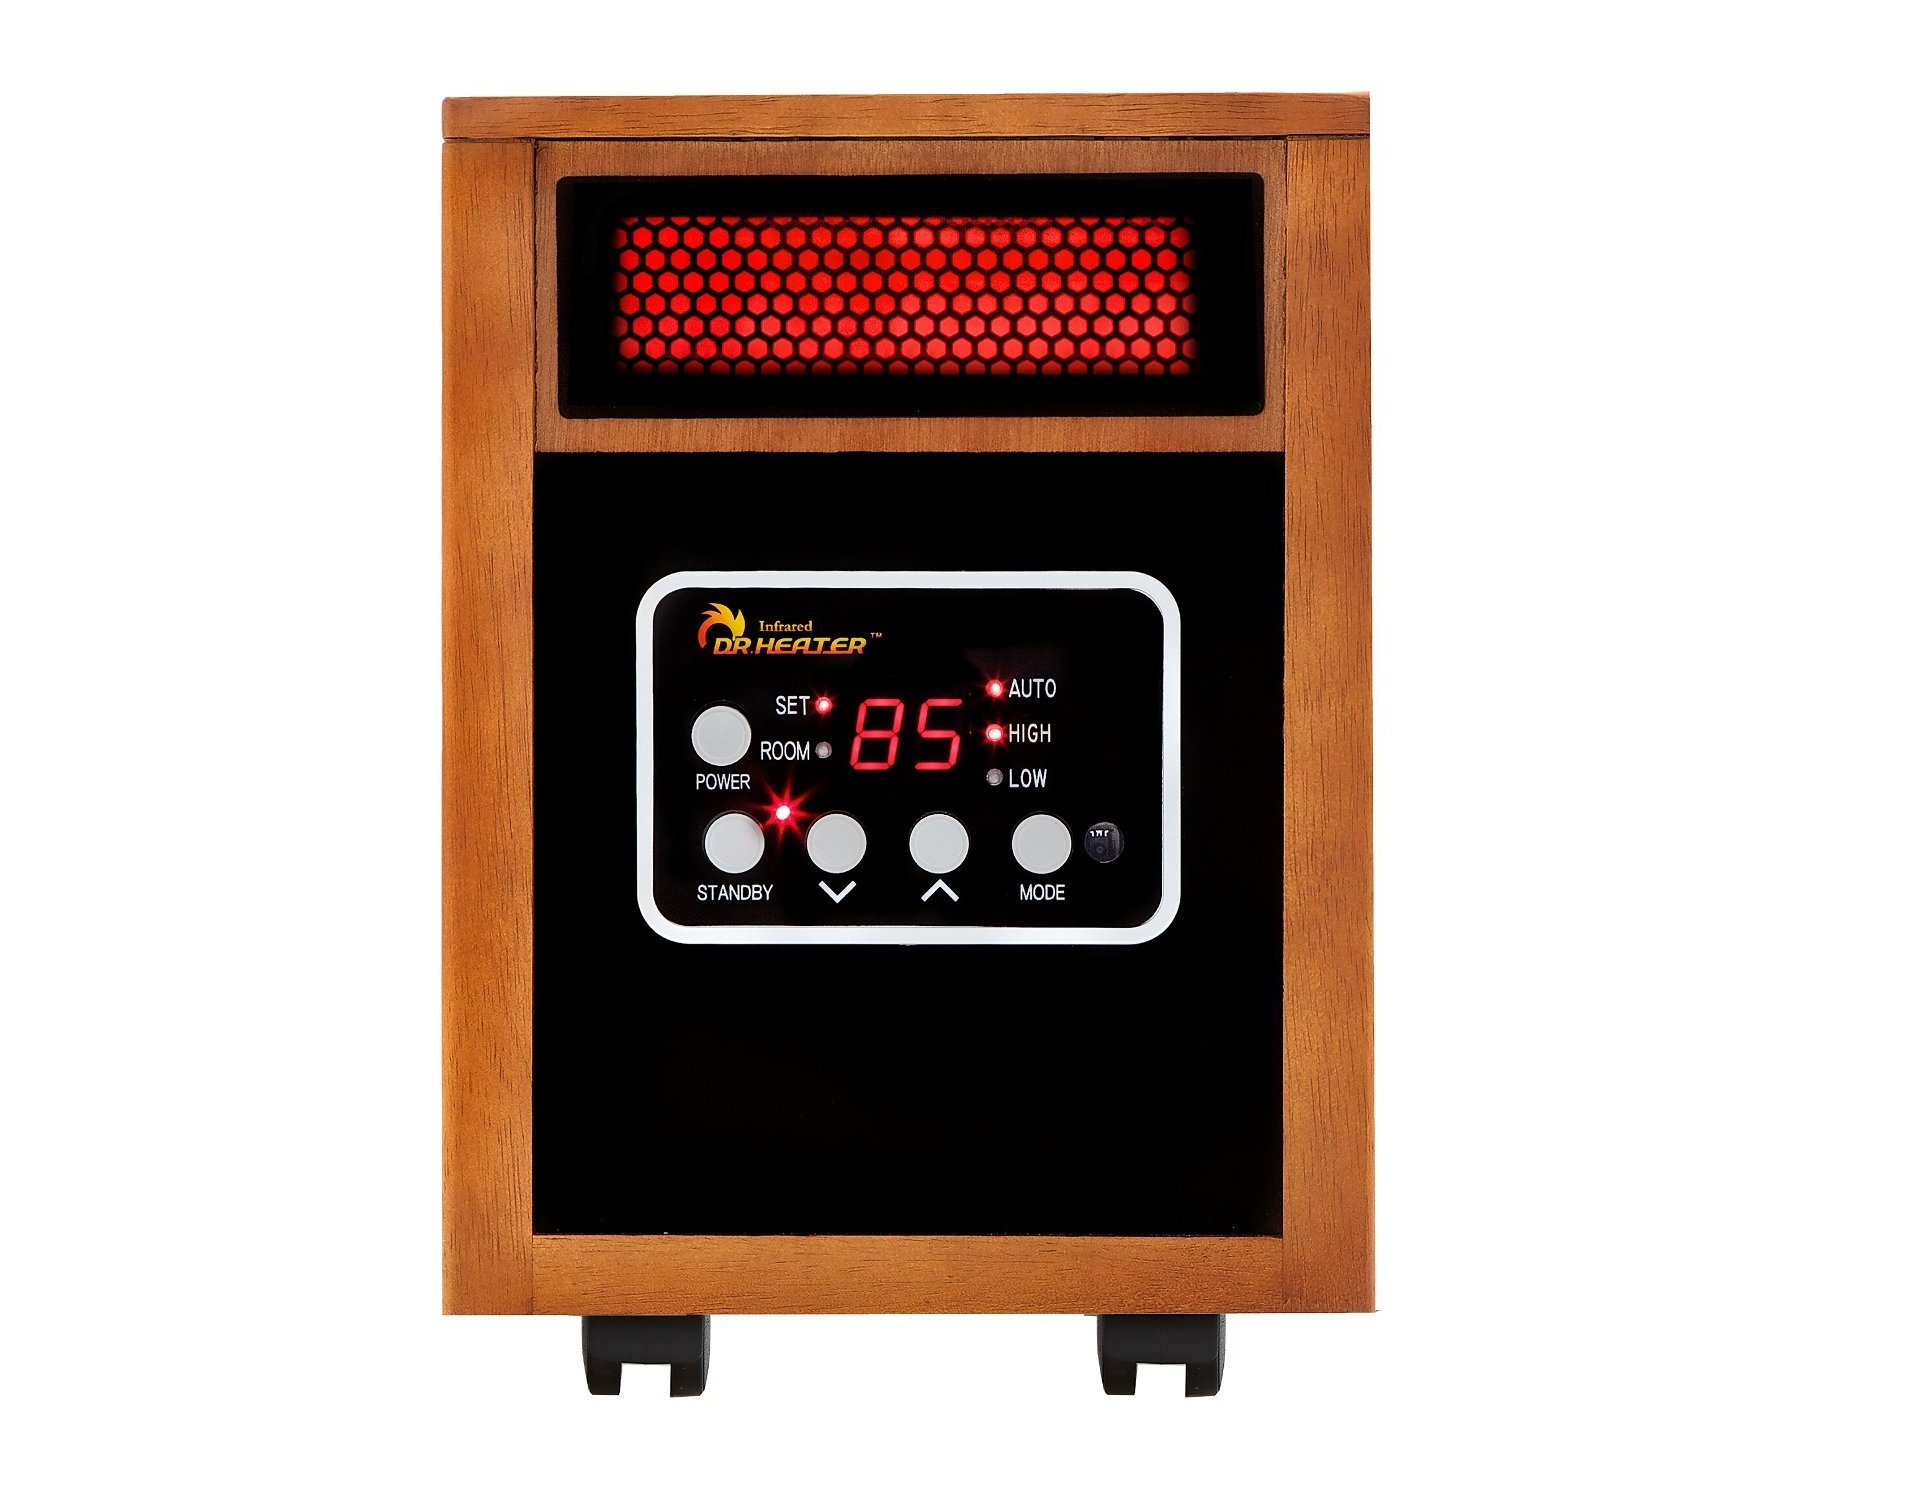 Dr infrared heater dr968 review the comfy buddy Dr infrared heater